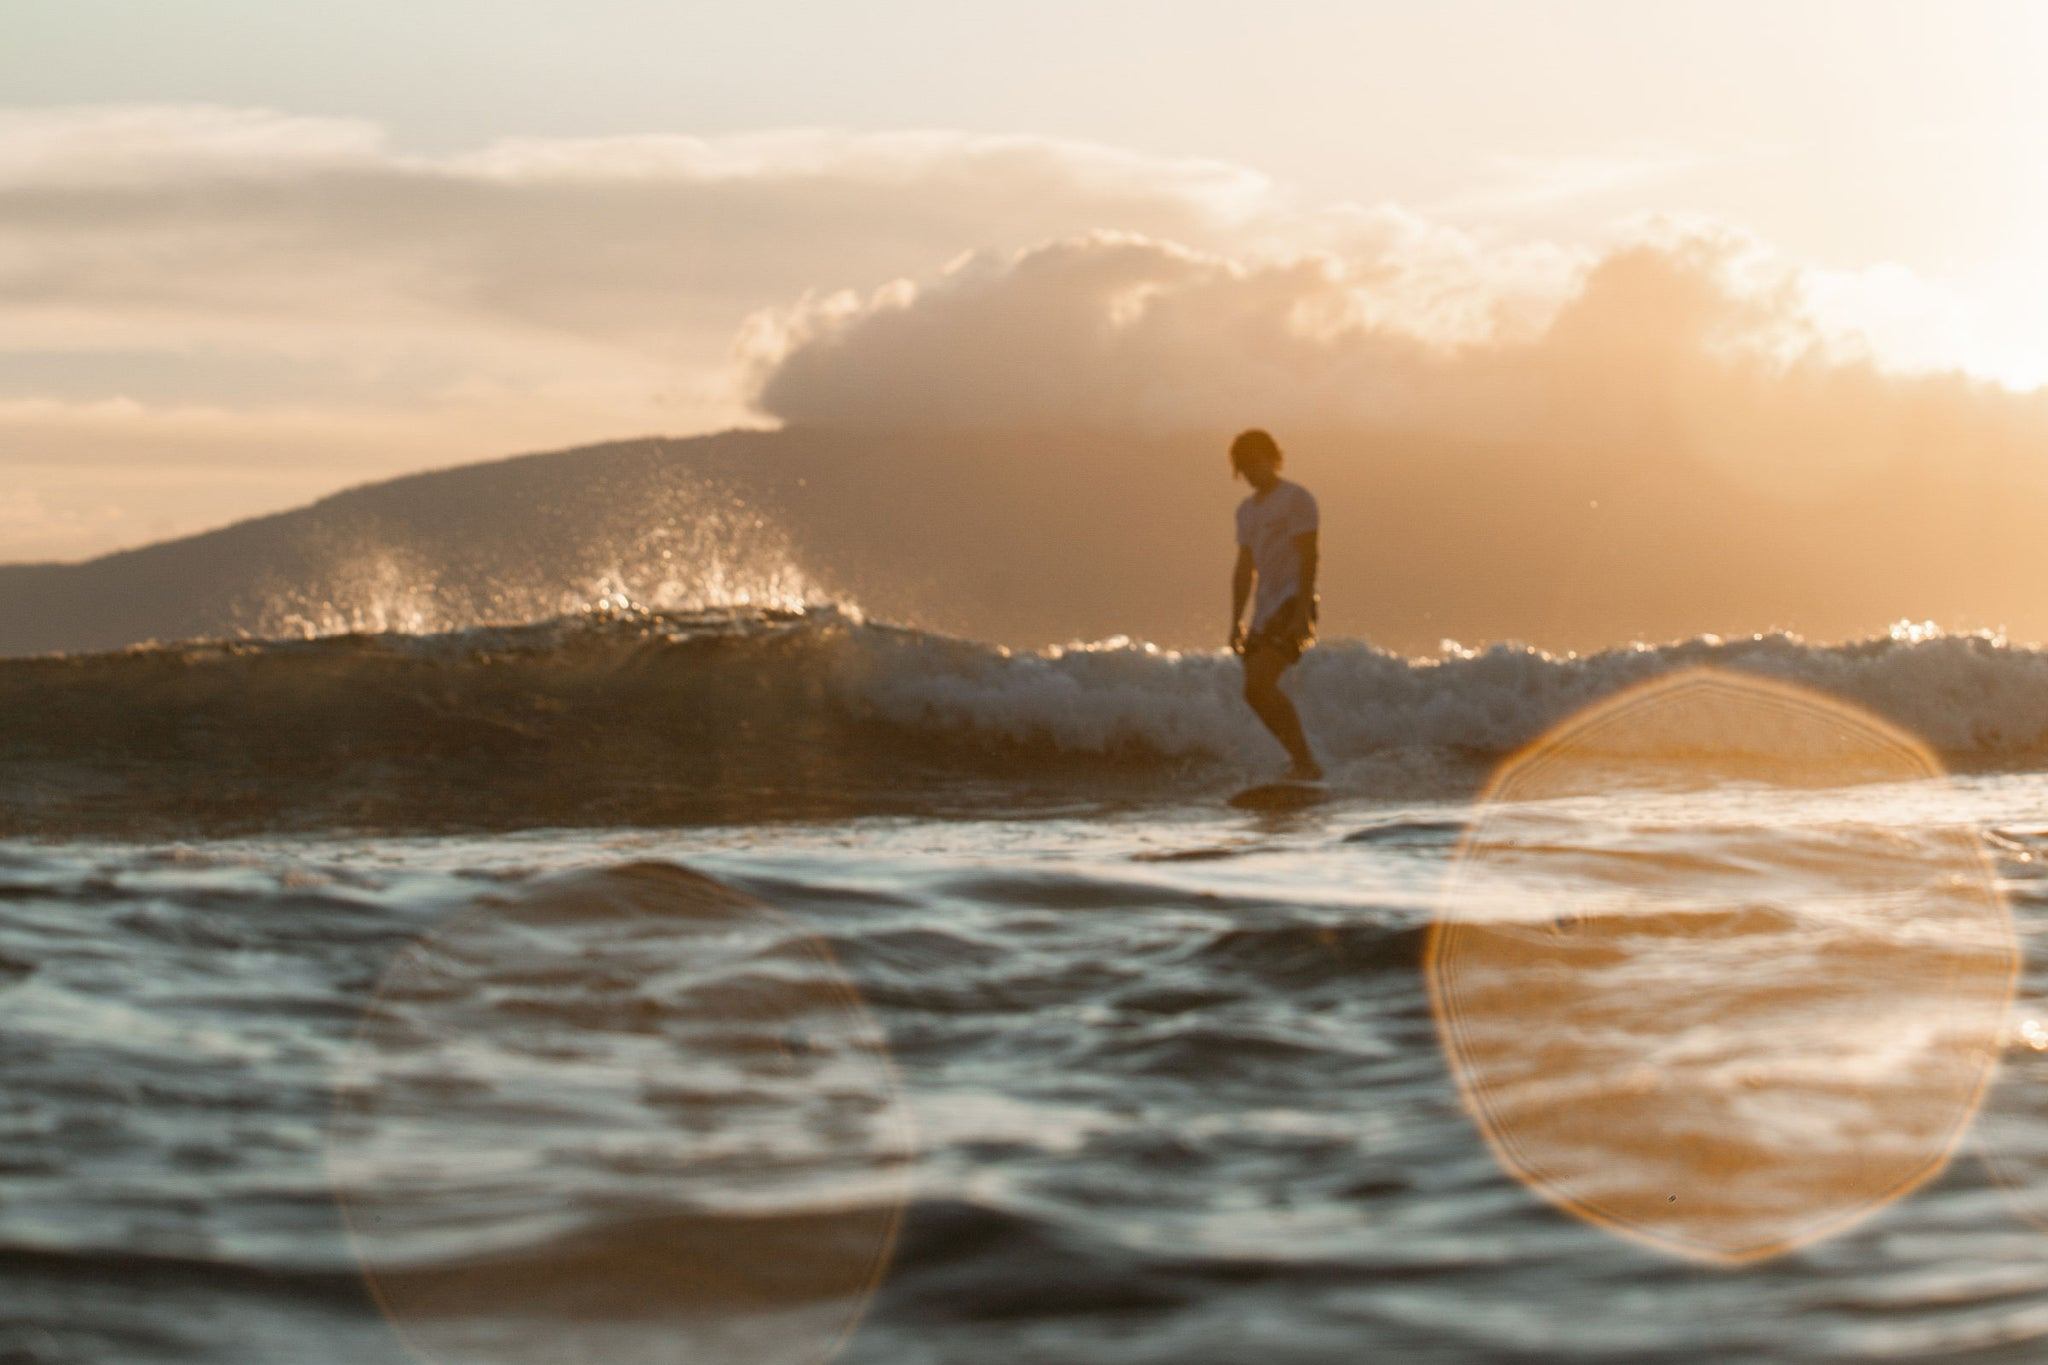 Surfing in Hawaii during sunset